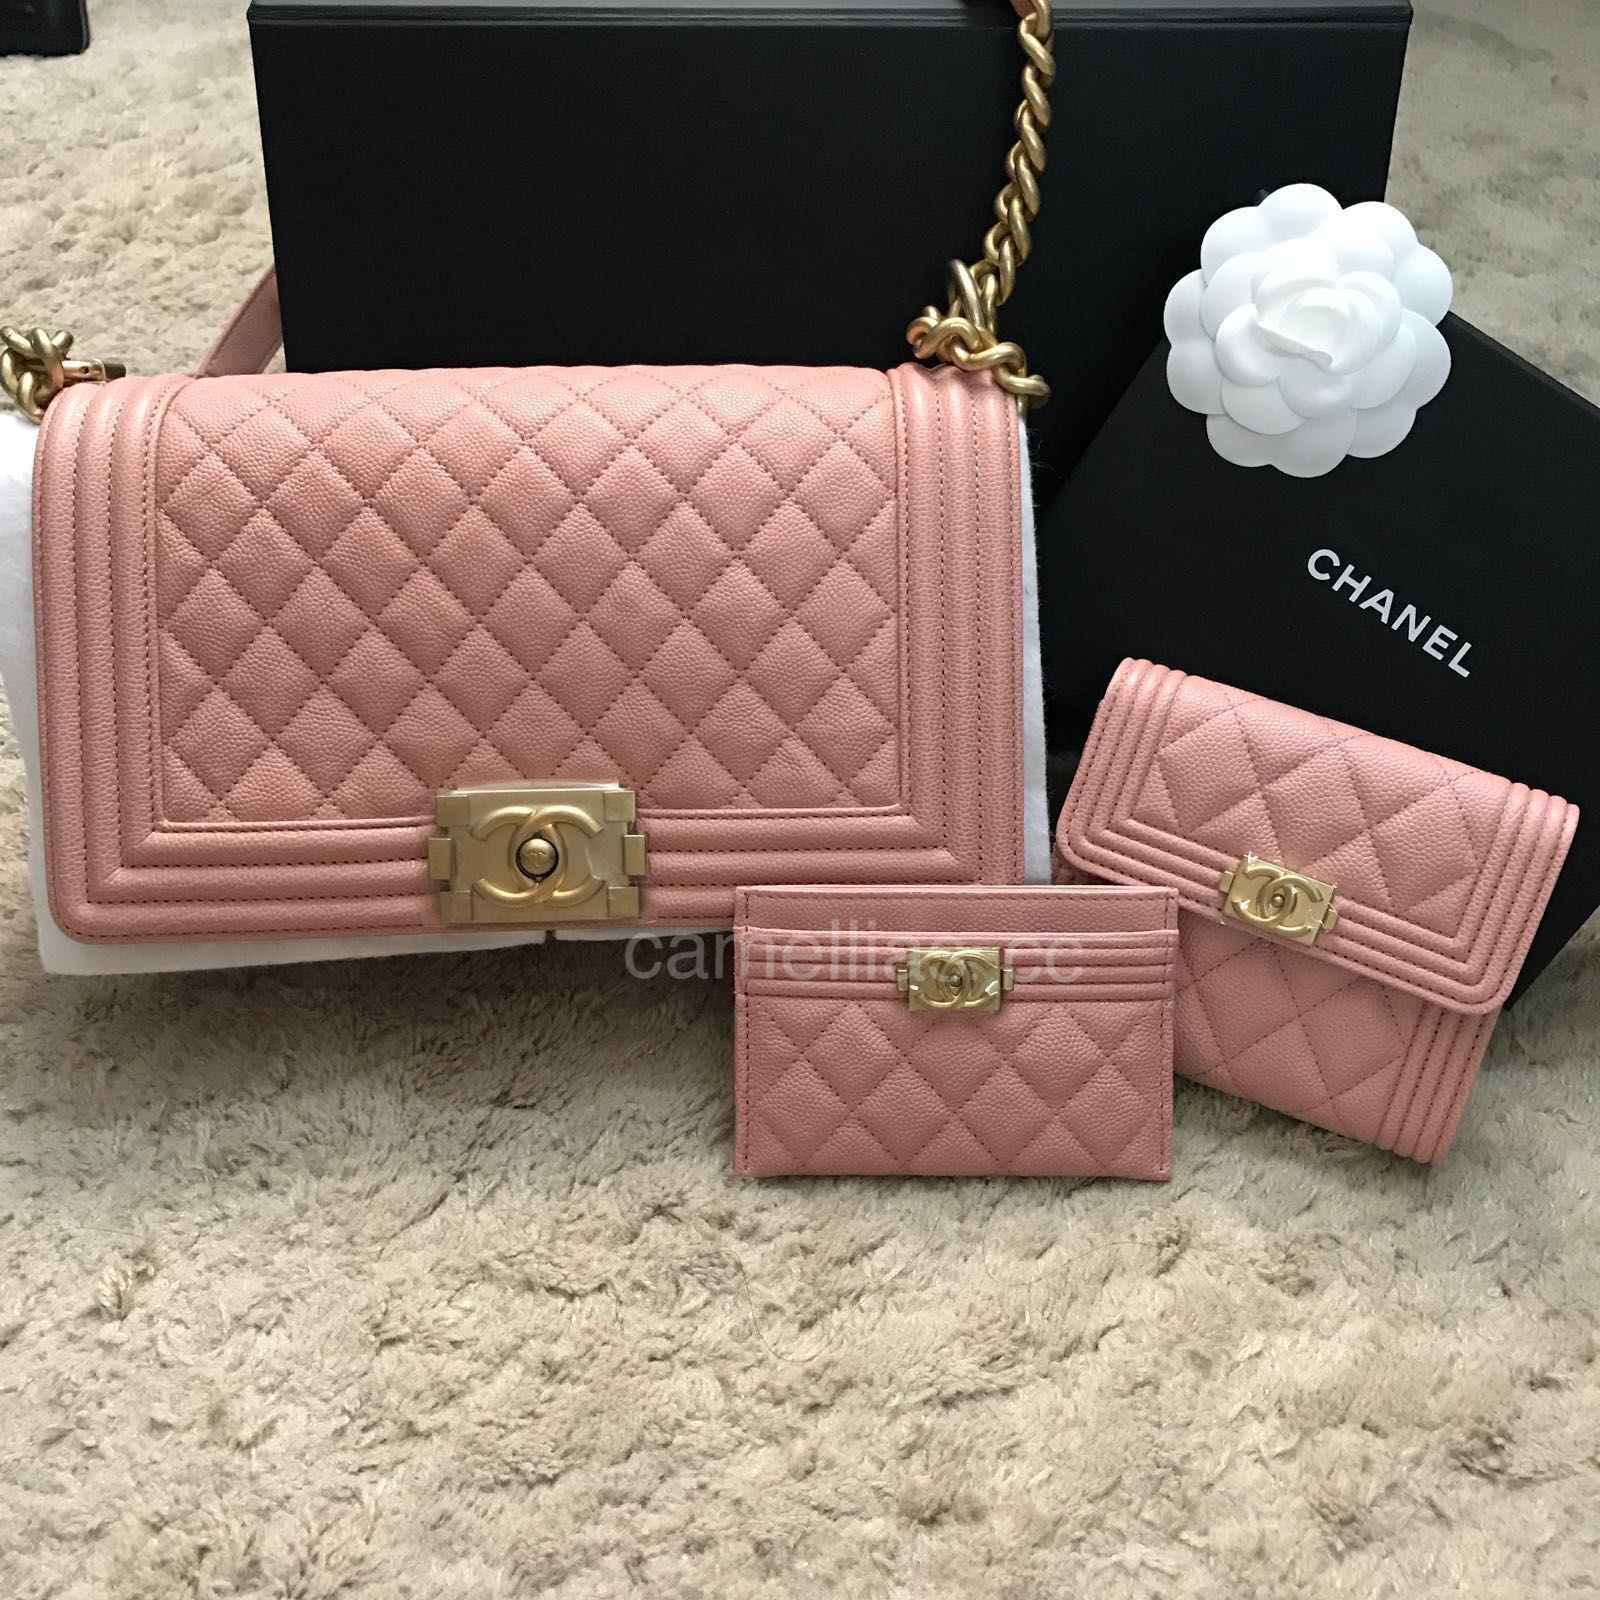 7cc6ad54a50a57 Chanel 18P Blush Pink Boy with Brushed Gold HW, Luxury, Bags ...